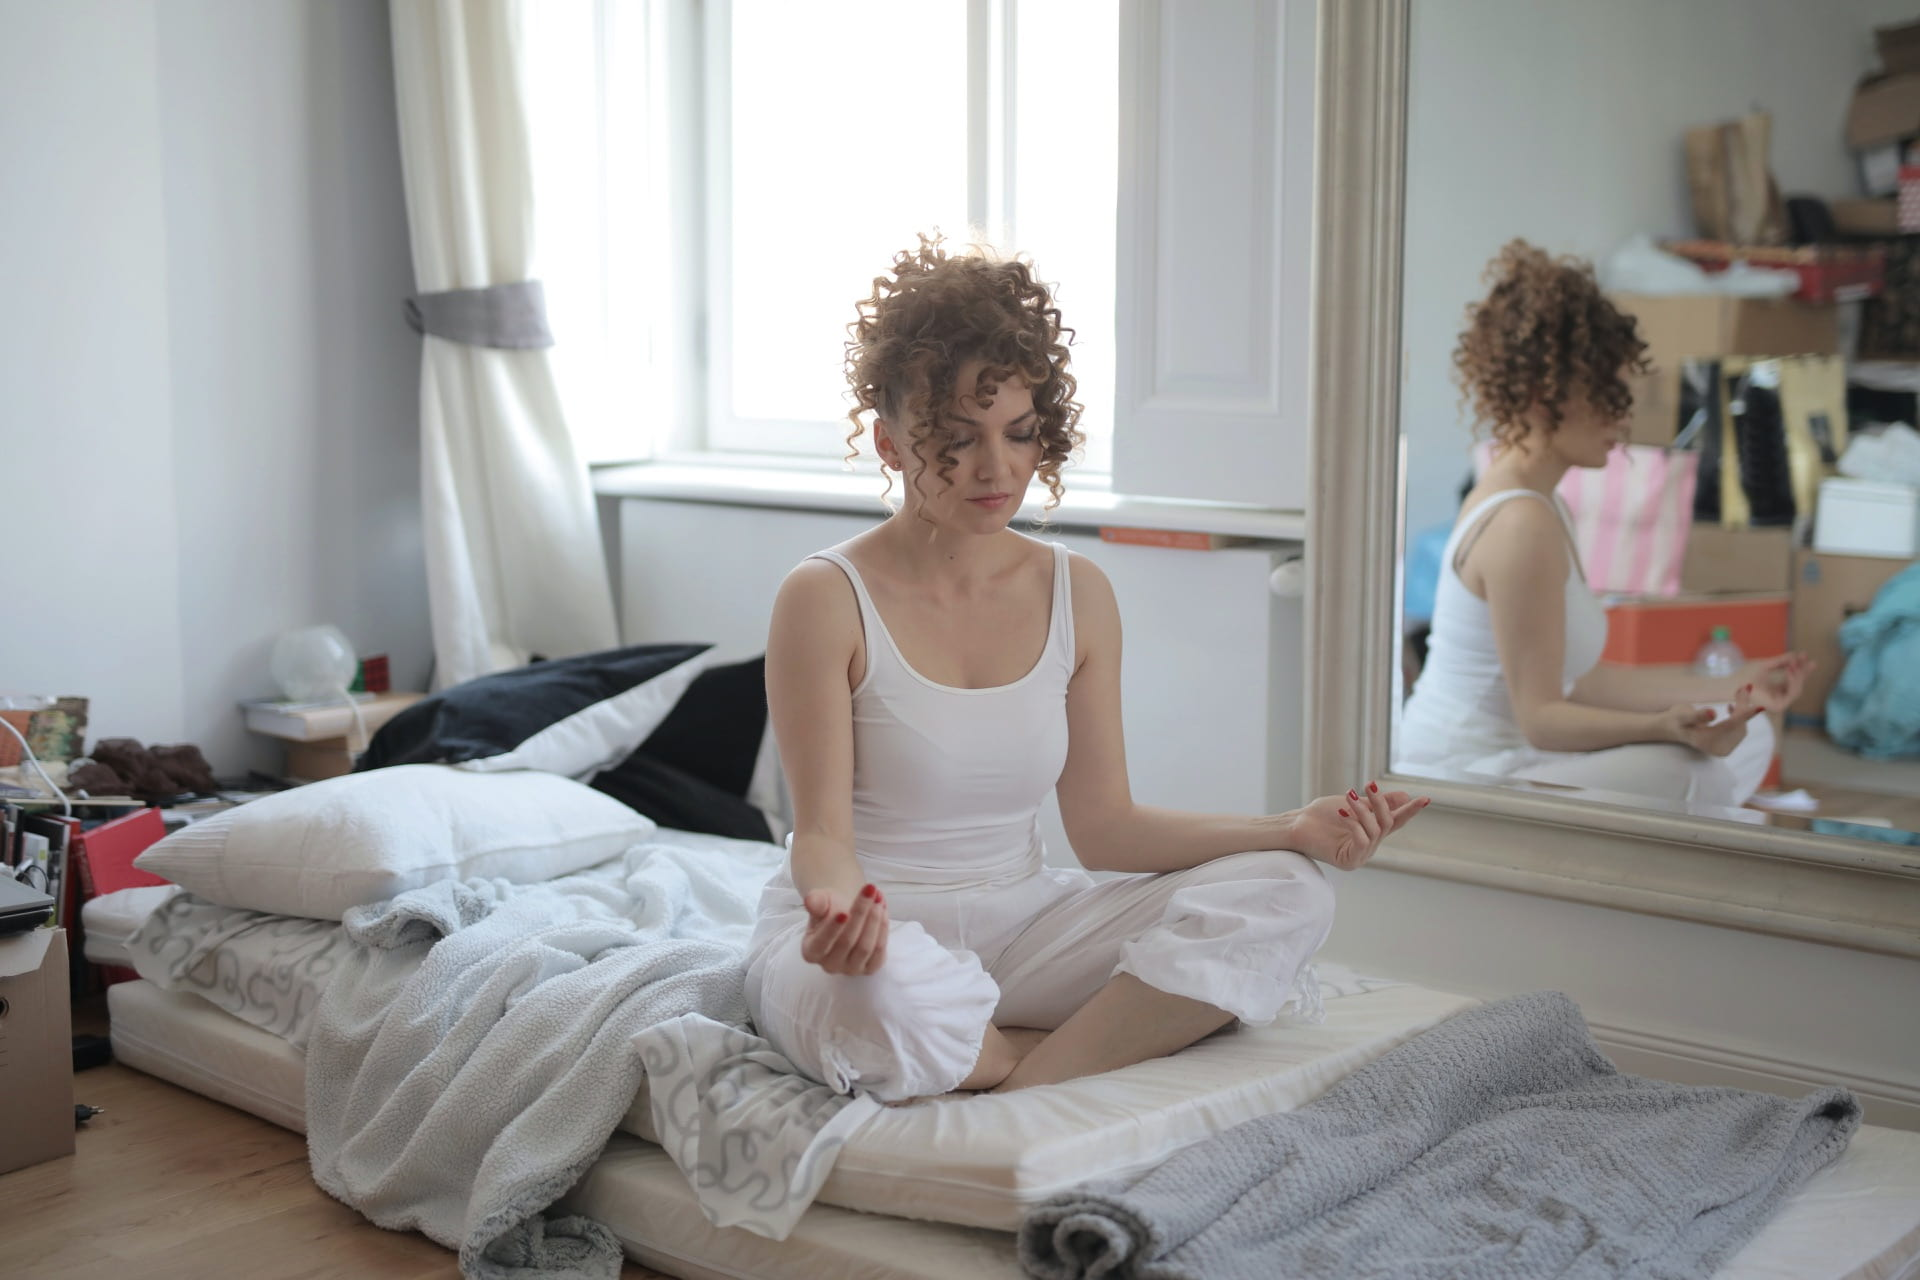 [calm-woman-in-lotus-pose-meditating-after-awakening-at-home]